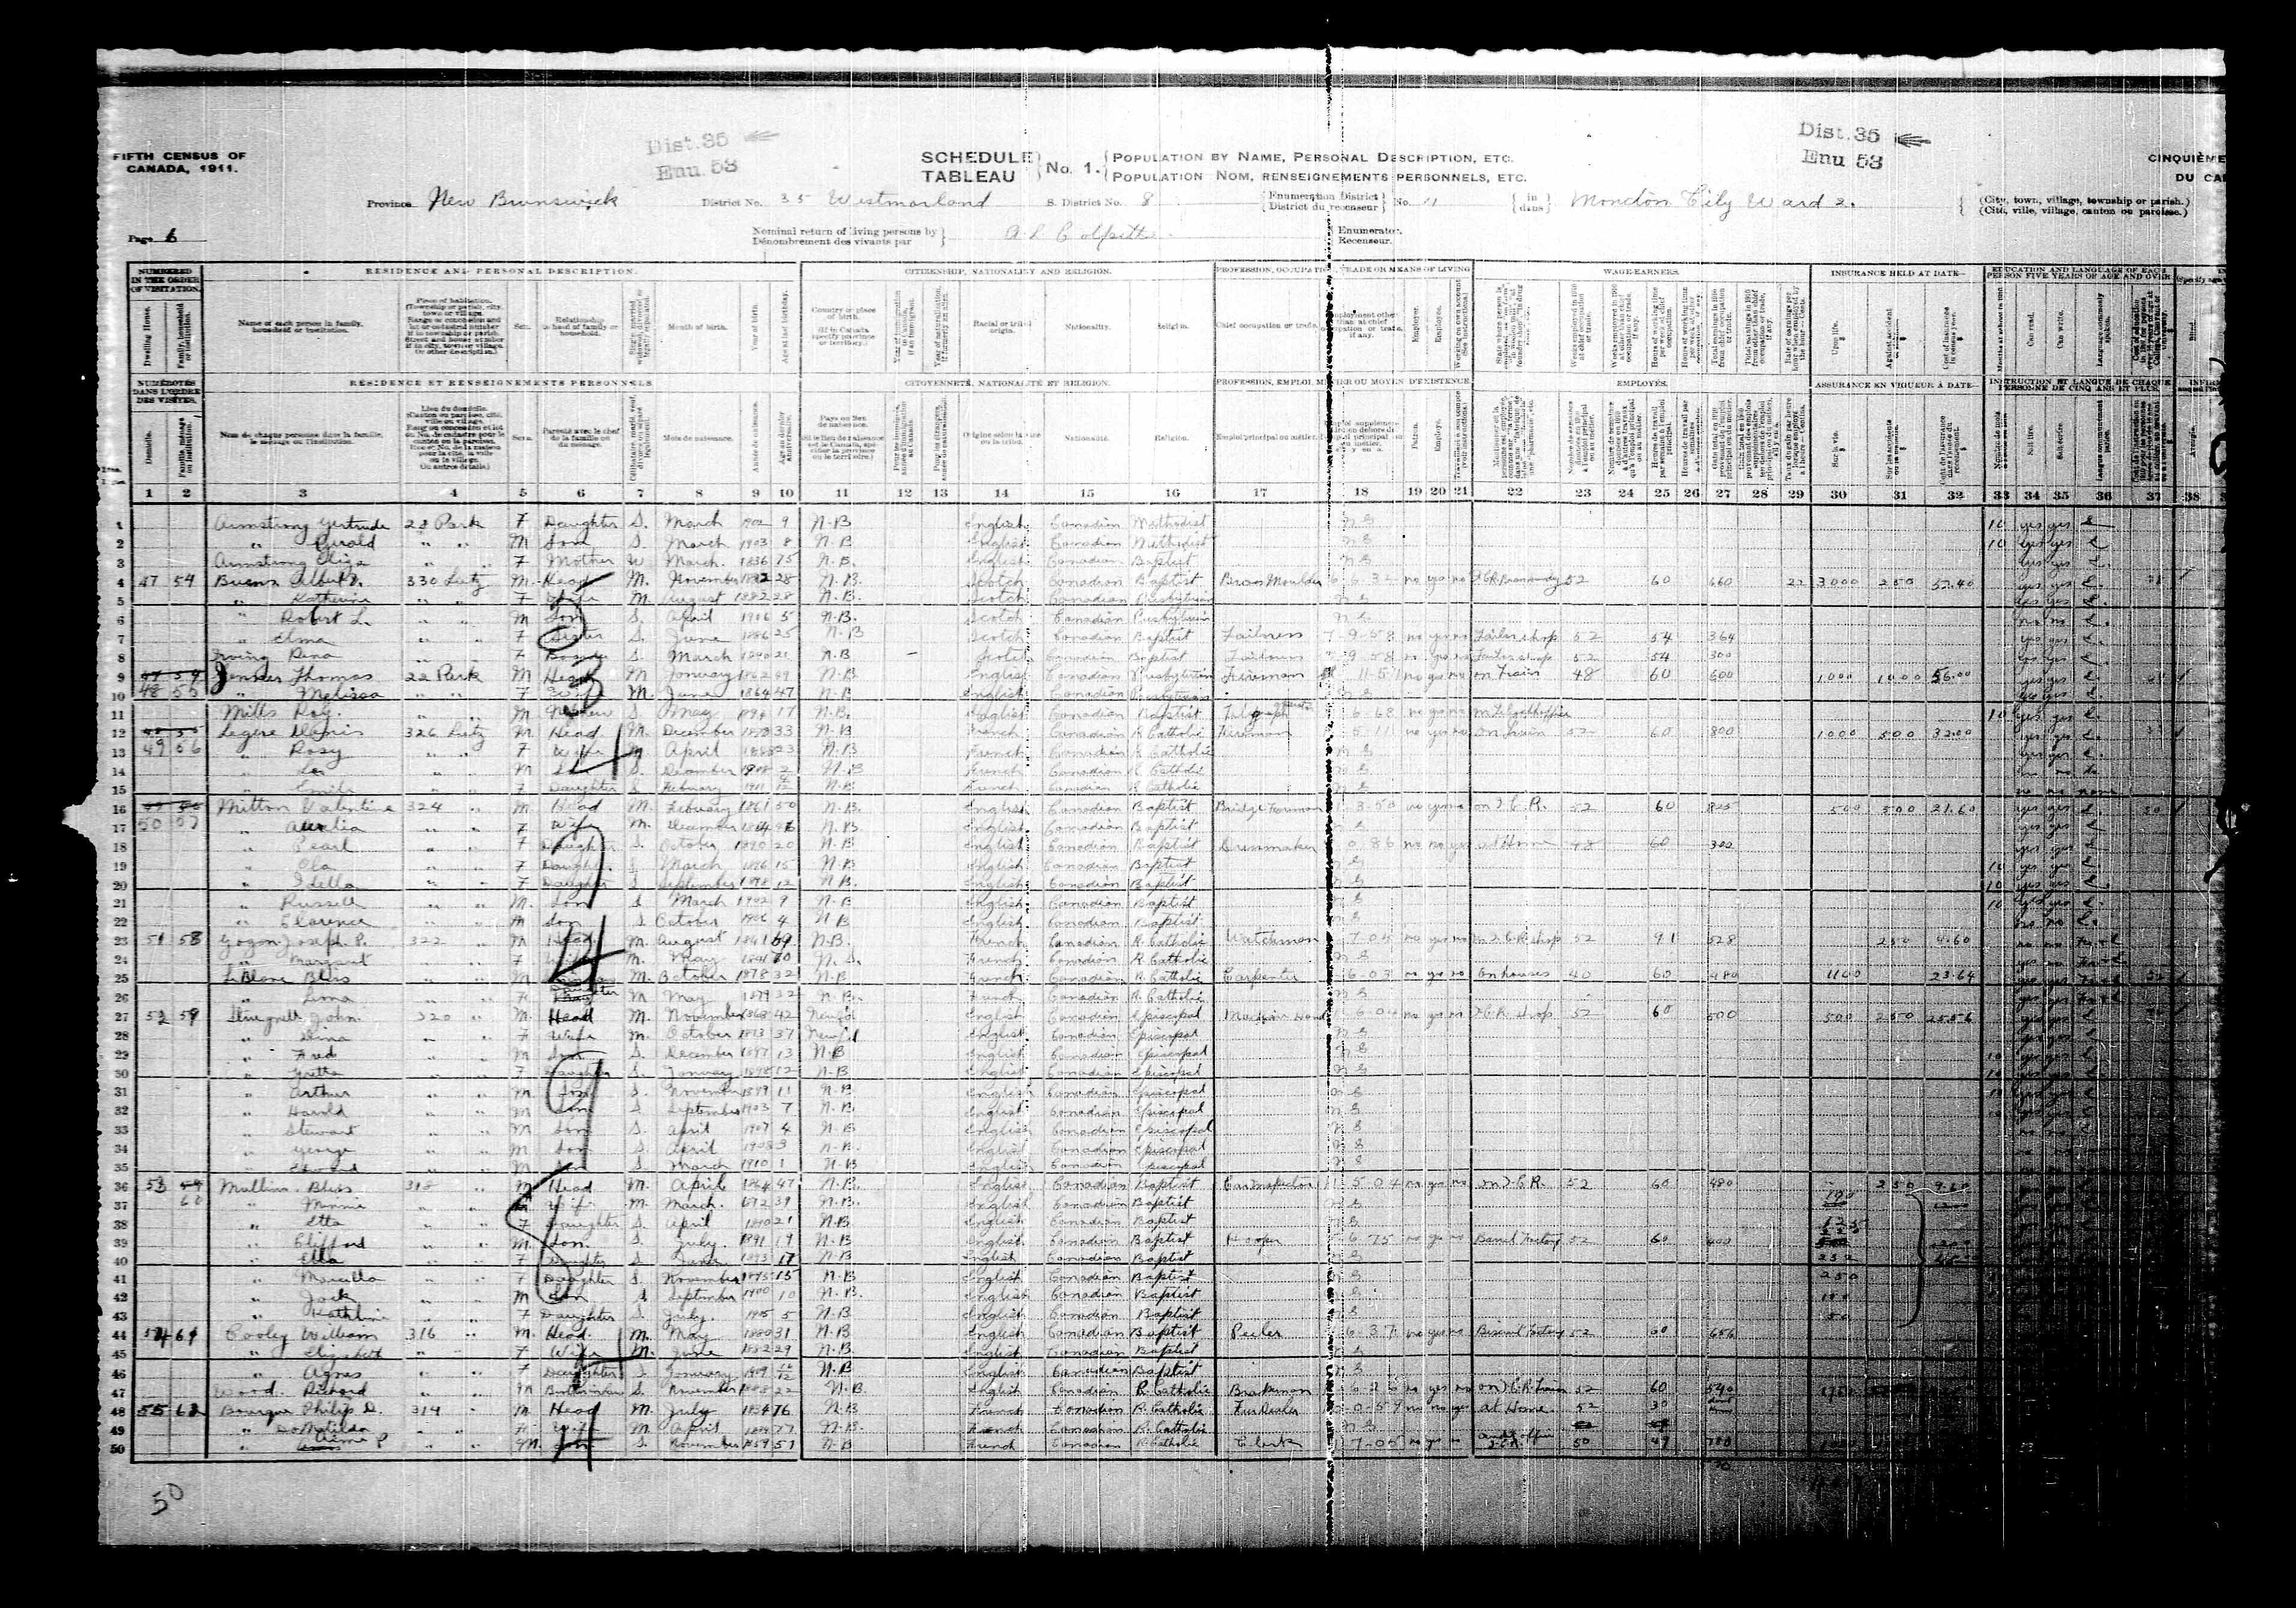 Digitized page of Census of Canada, 1911, Page number 6, for Danis Legere